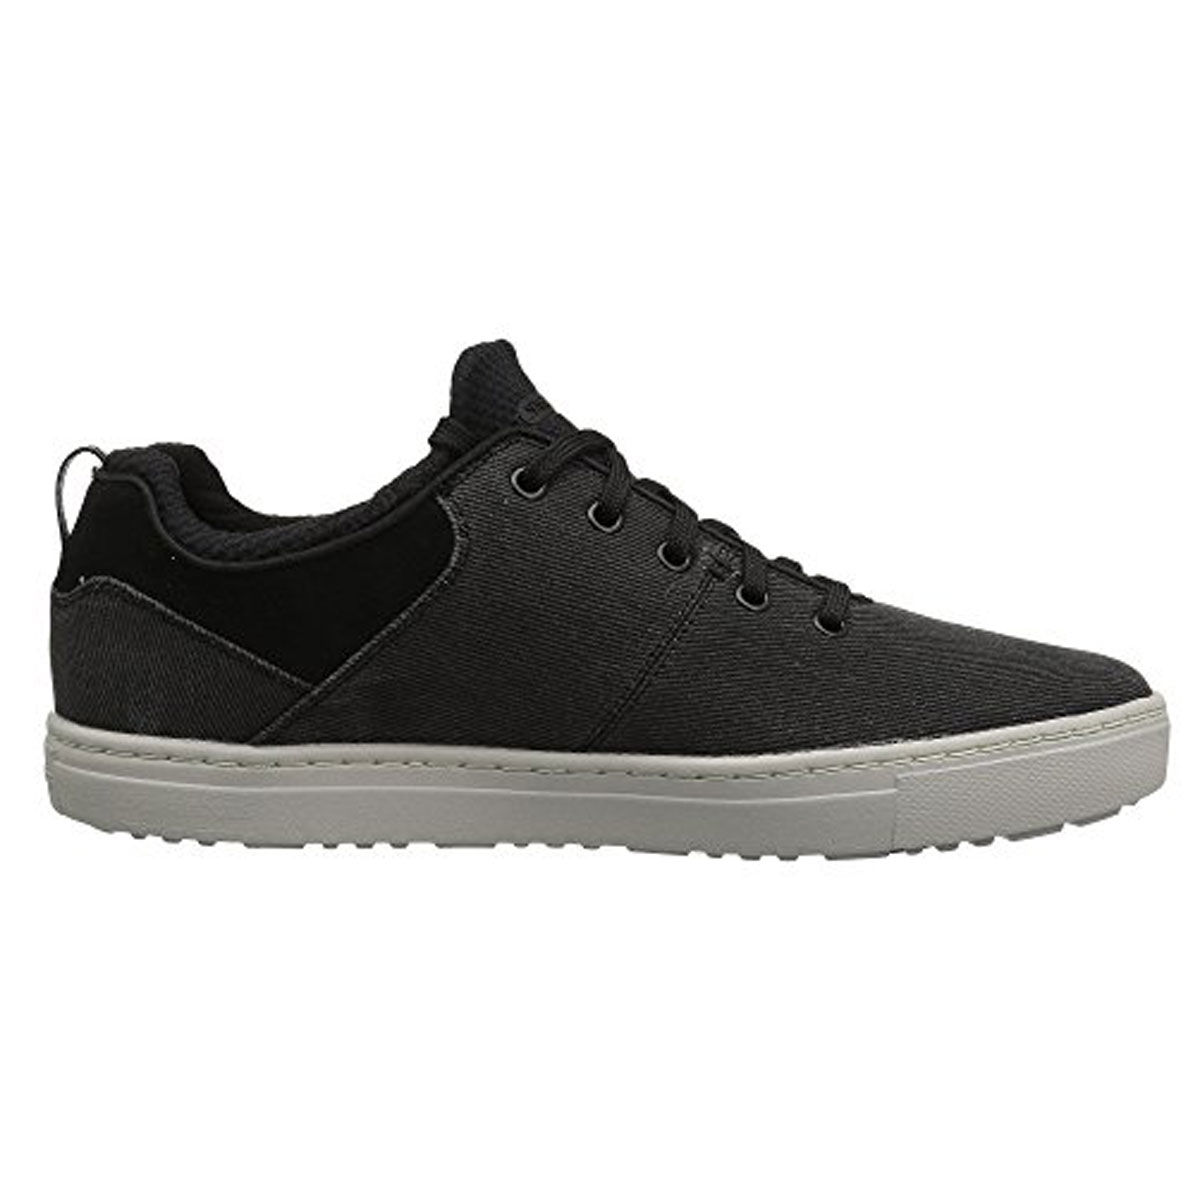 Skechers Ravago Mens Casual Shoe